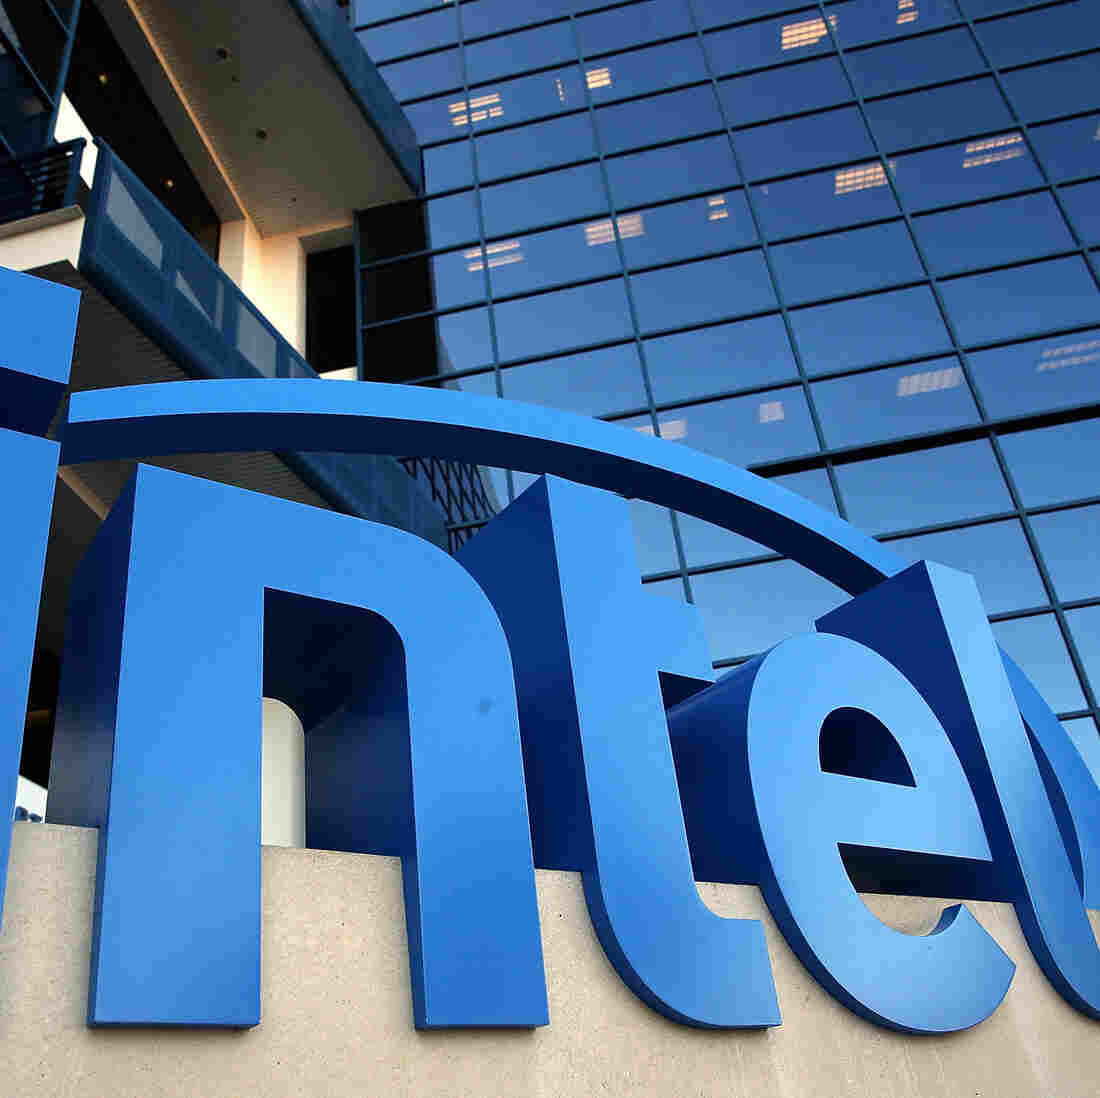 After Pulling Ads, Intel Tries To Stay Out Of #Gamergate Debate